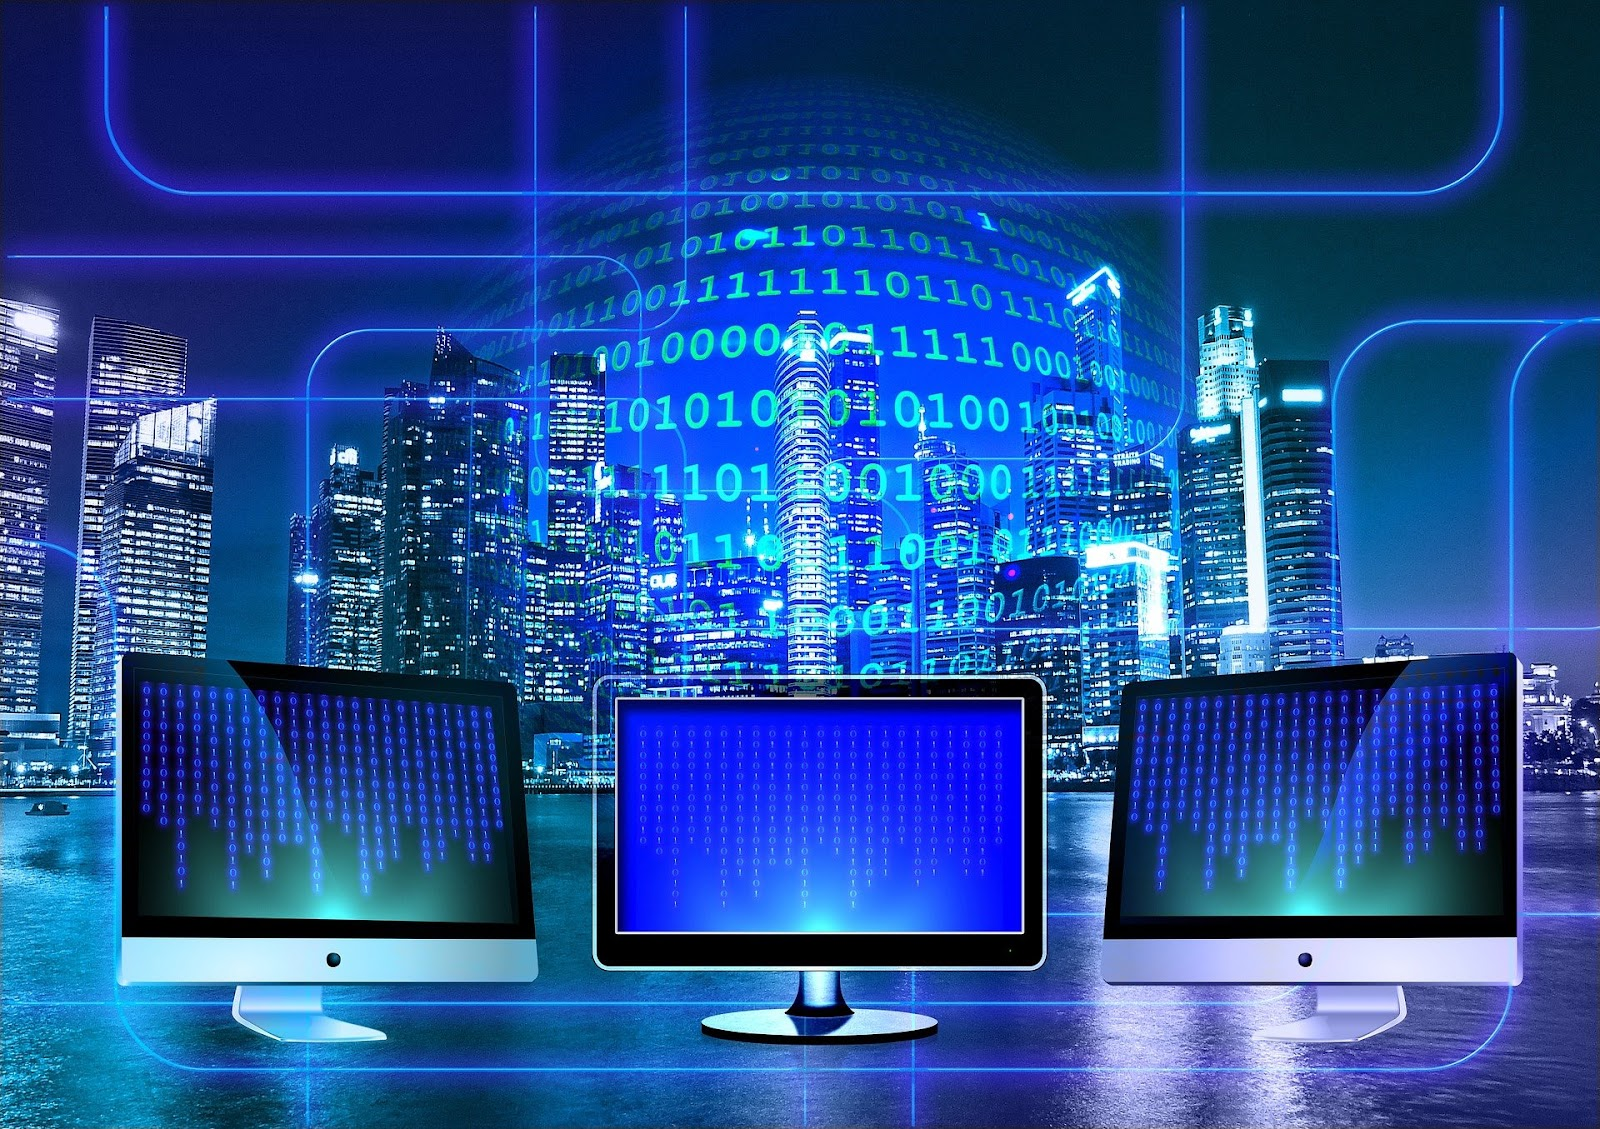 Three computer monitors sit on a desk in front of a window featuring a large city skyline at night. There is a holographic-like background image showing rows of coding.